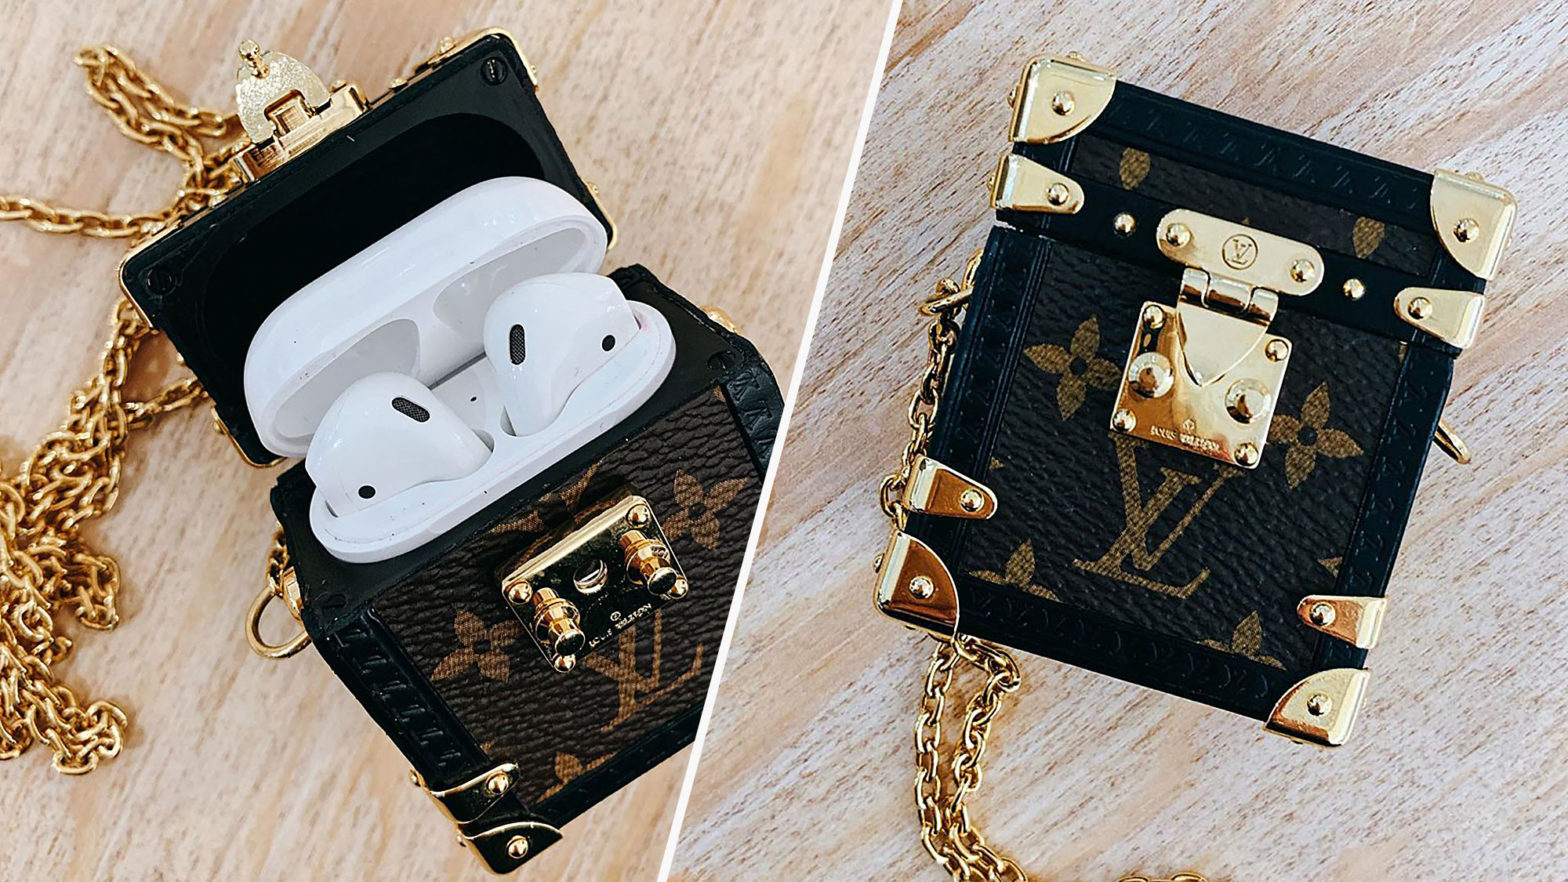 Louis Vuitton Apple AirPods Case